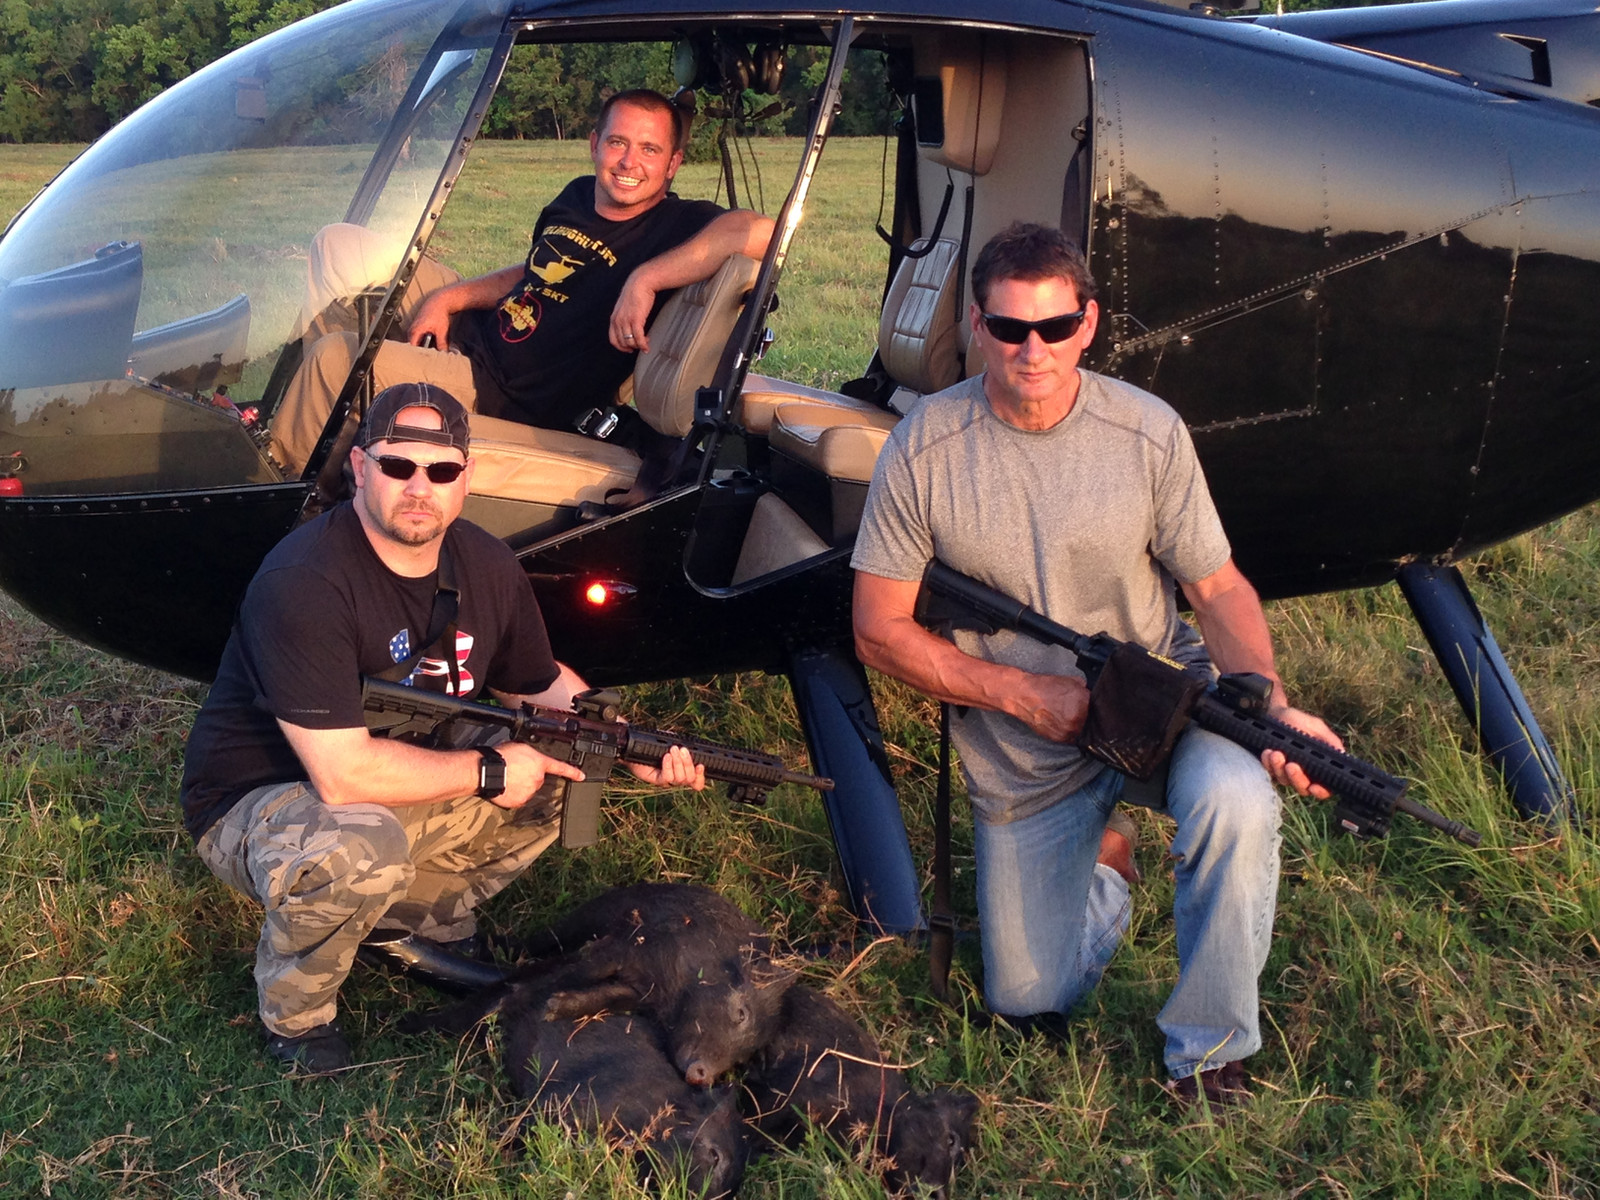 helicopter hog hunts with  on Hog Hunting In The Texas Hill Country in addition helicopterpighunting besides Helicopter Pig Hunting With Texas Specialty Hunts Helicopter Hog Hunting On 650000 Acres In Texas further Hunting Photos also Watch.